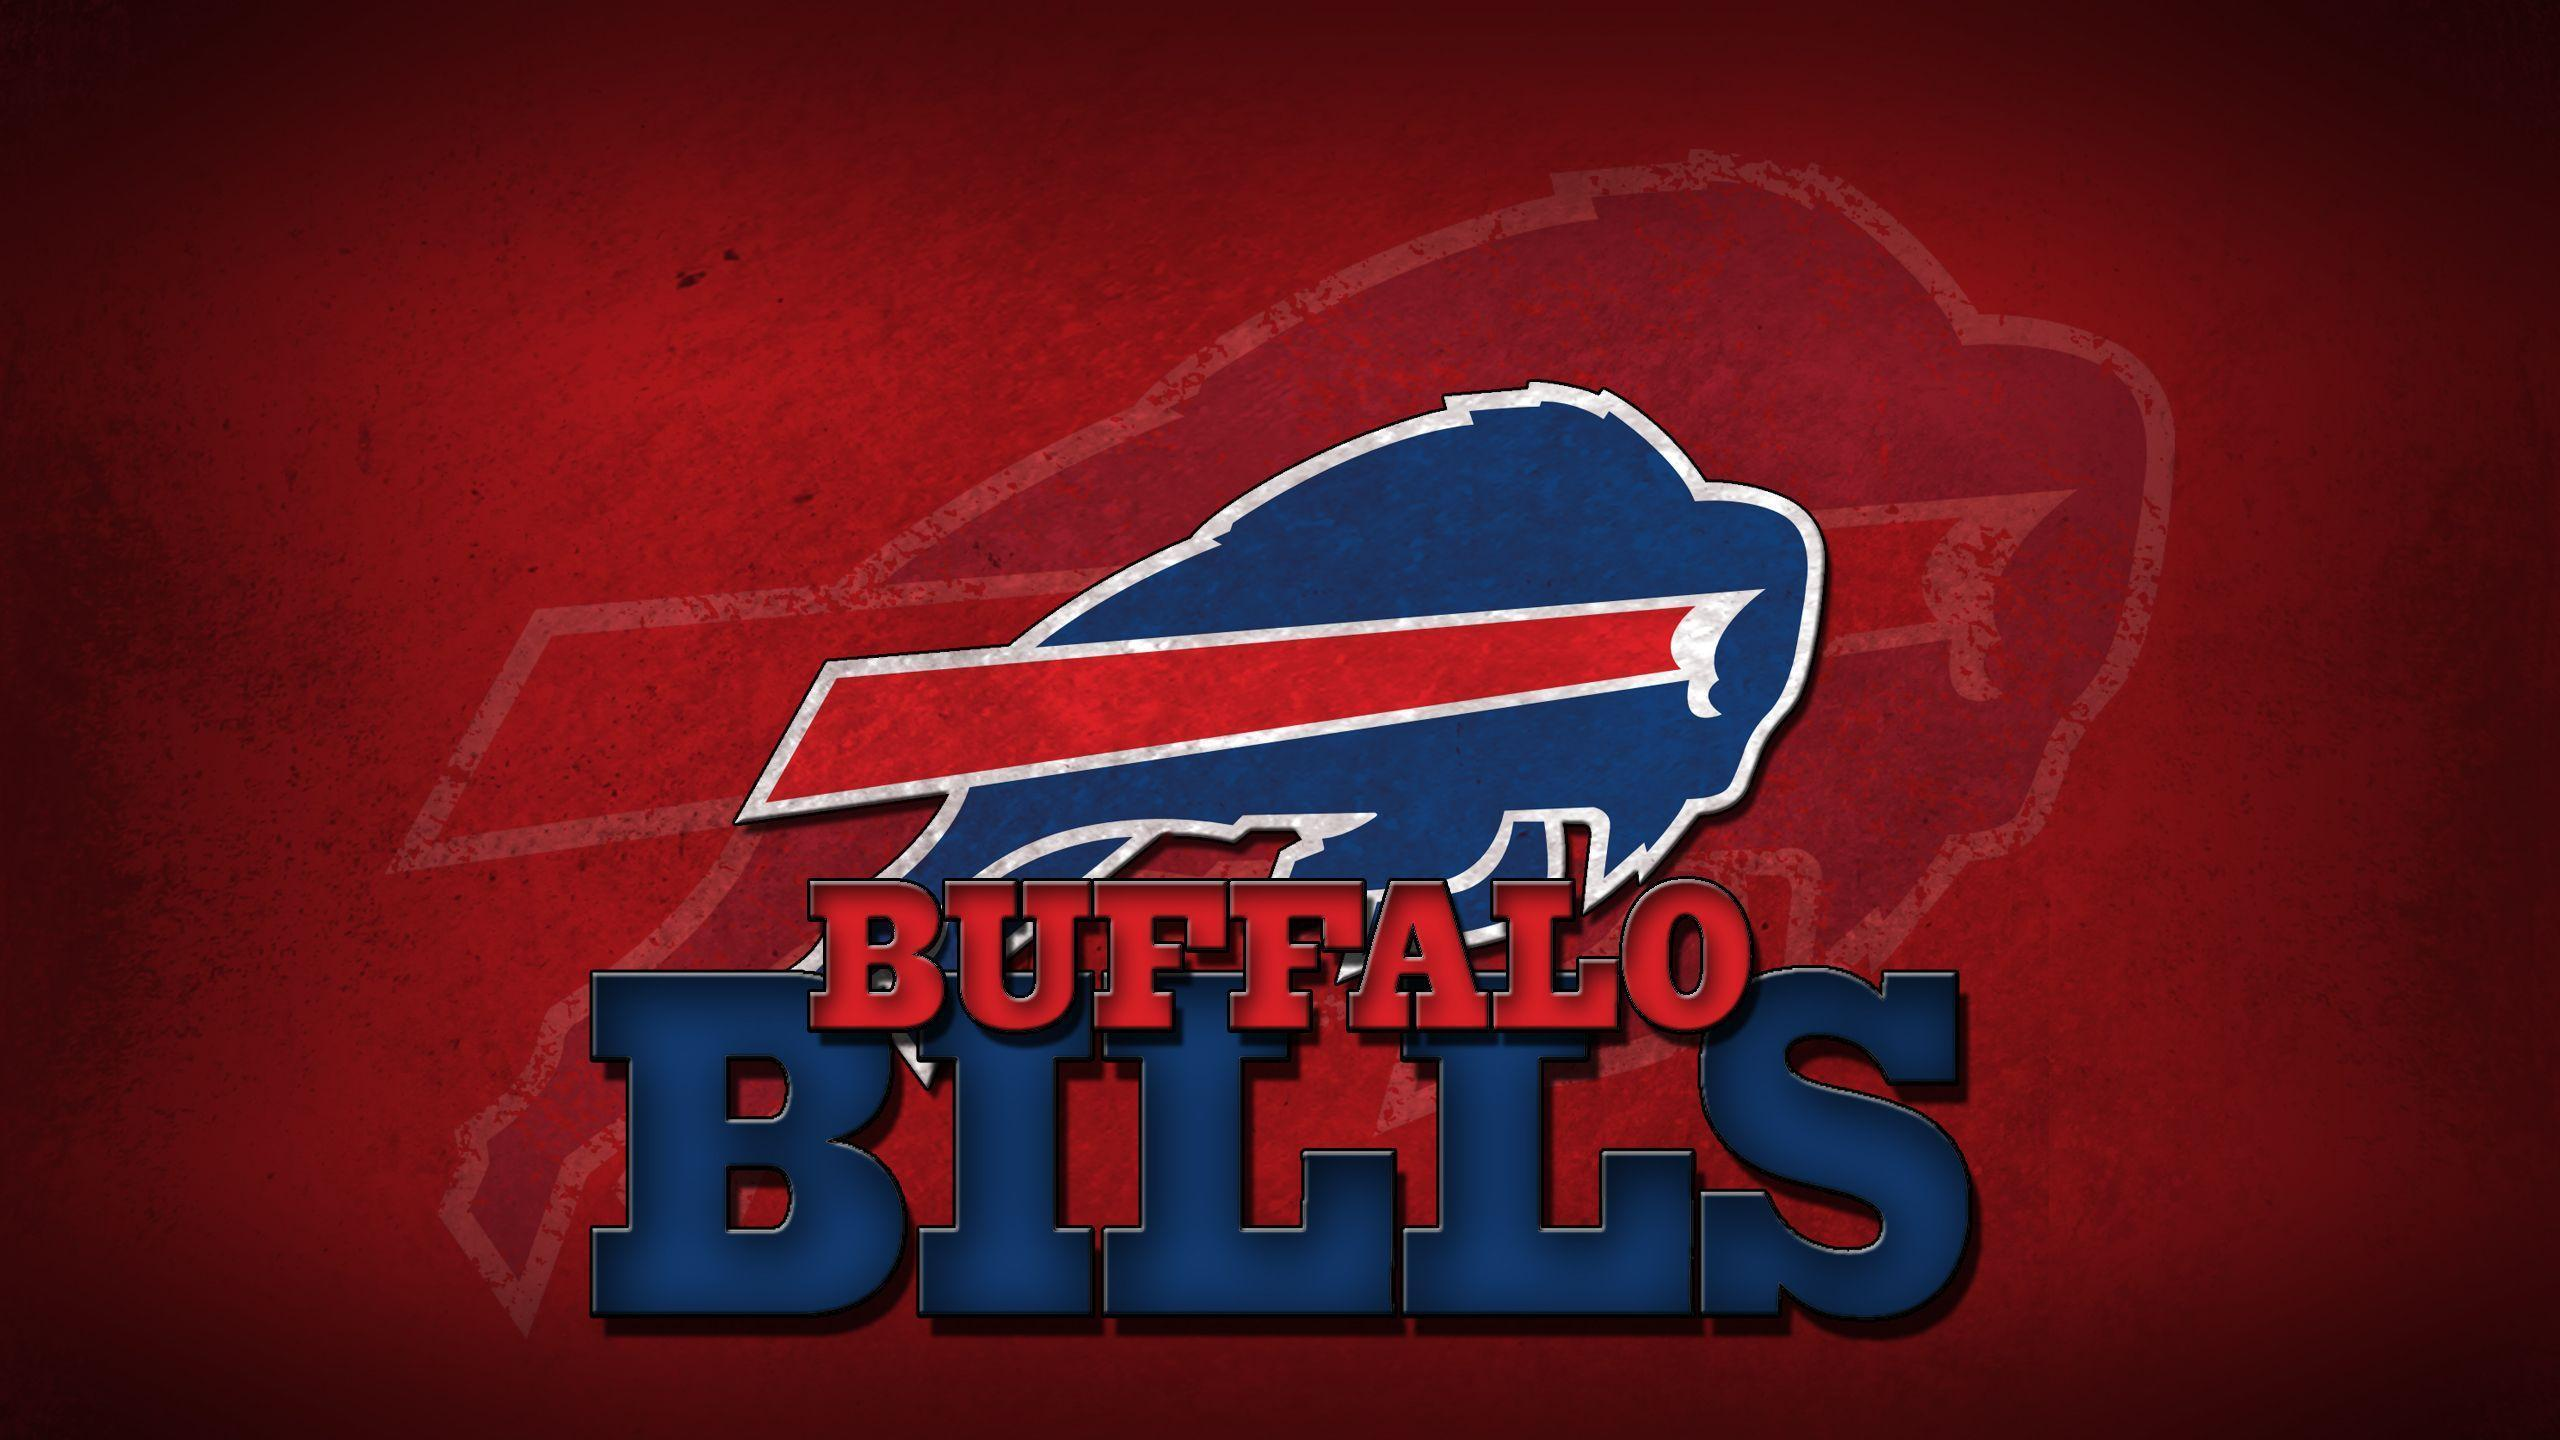 Buffalo Bills by BeAware8